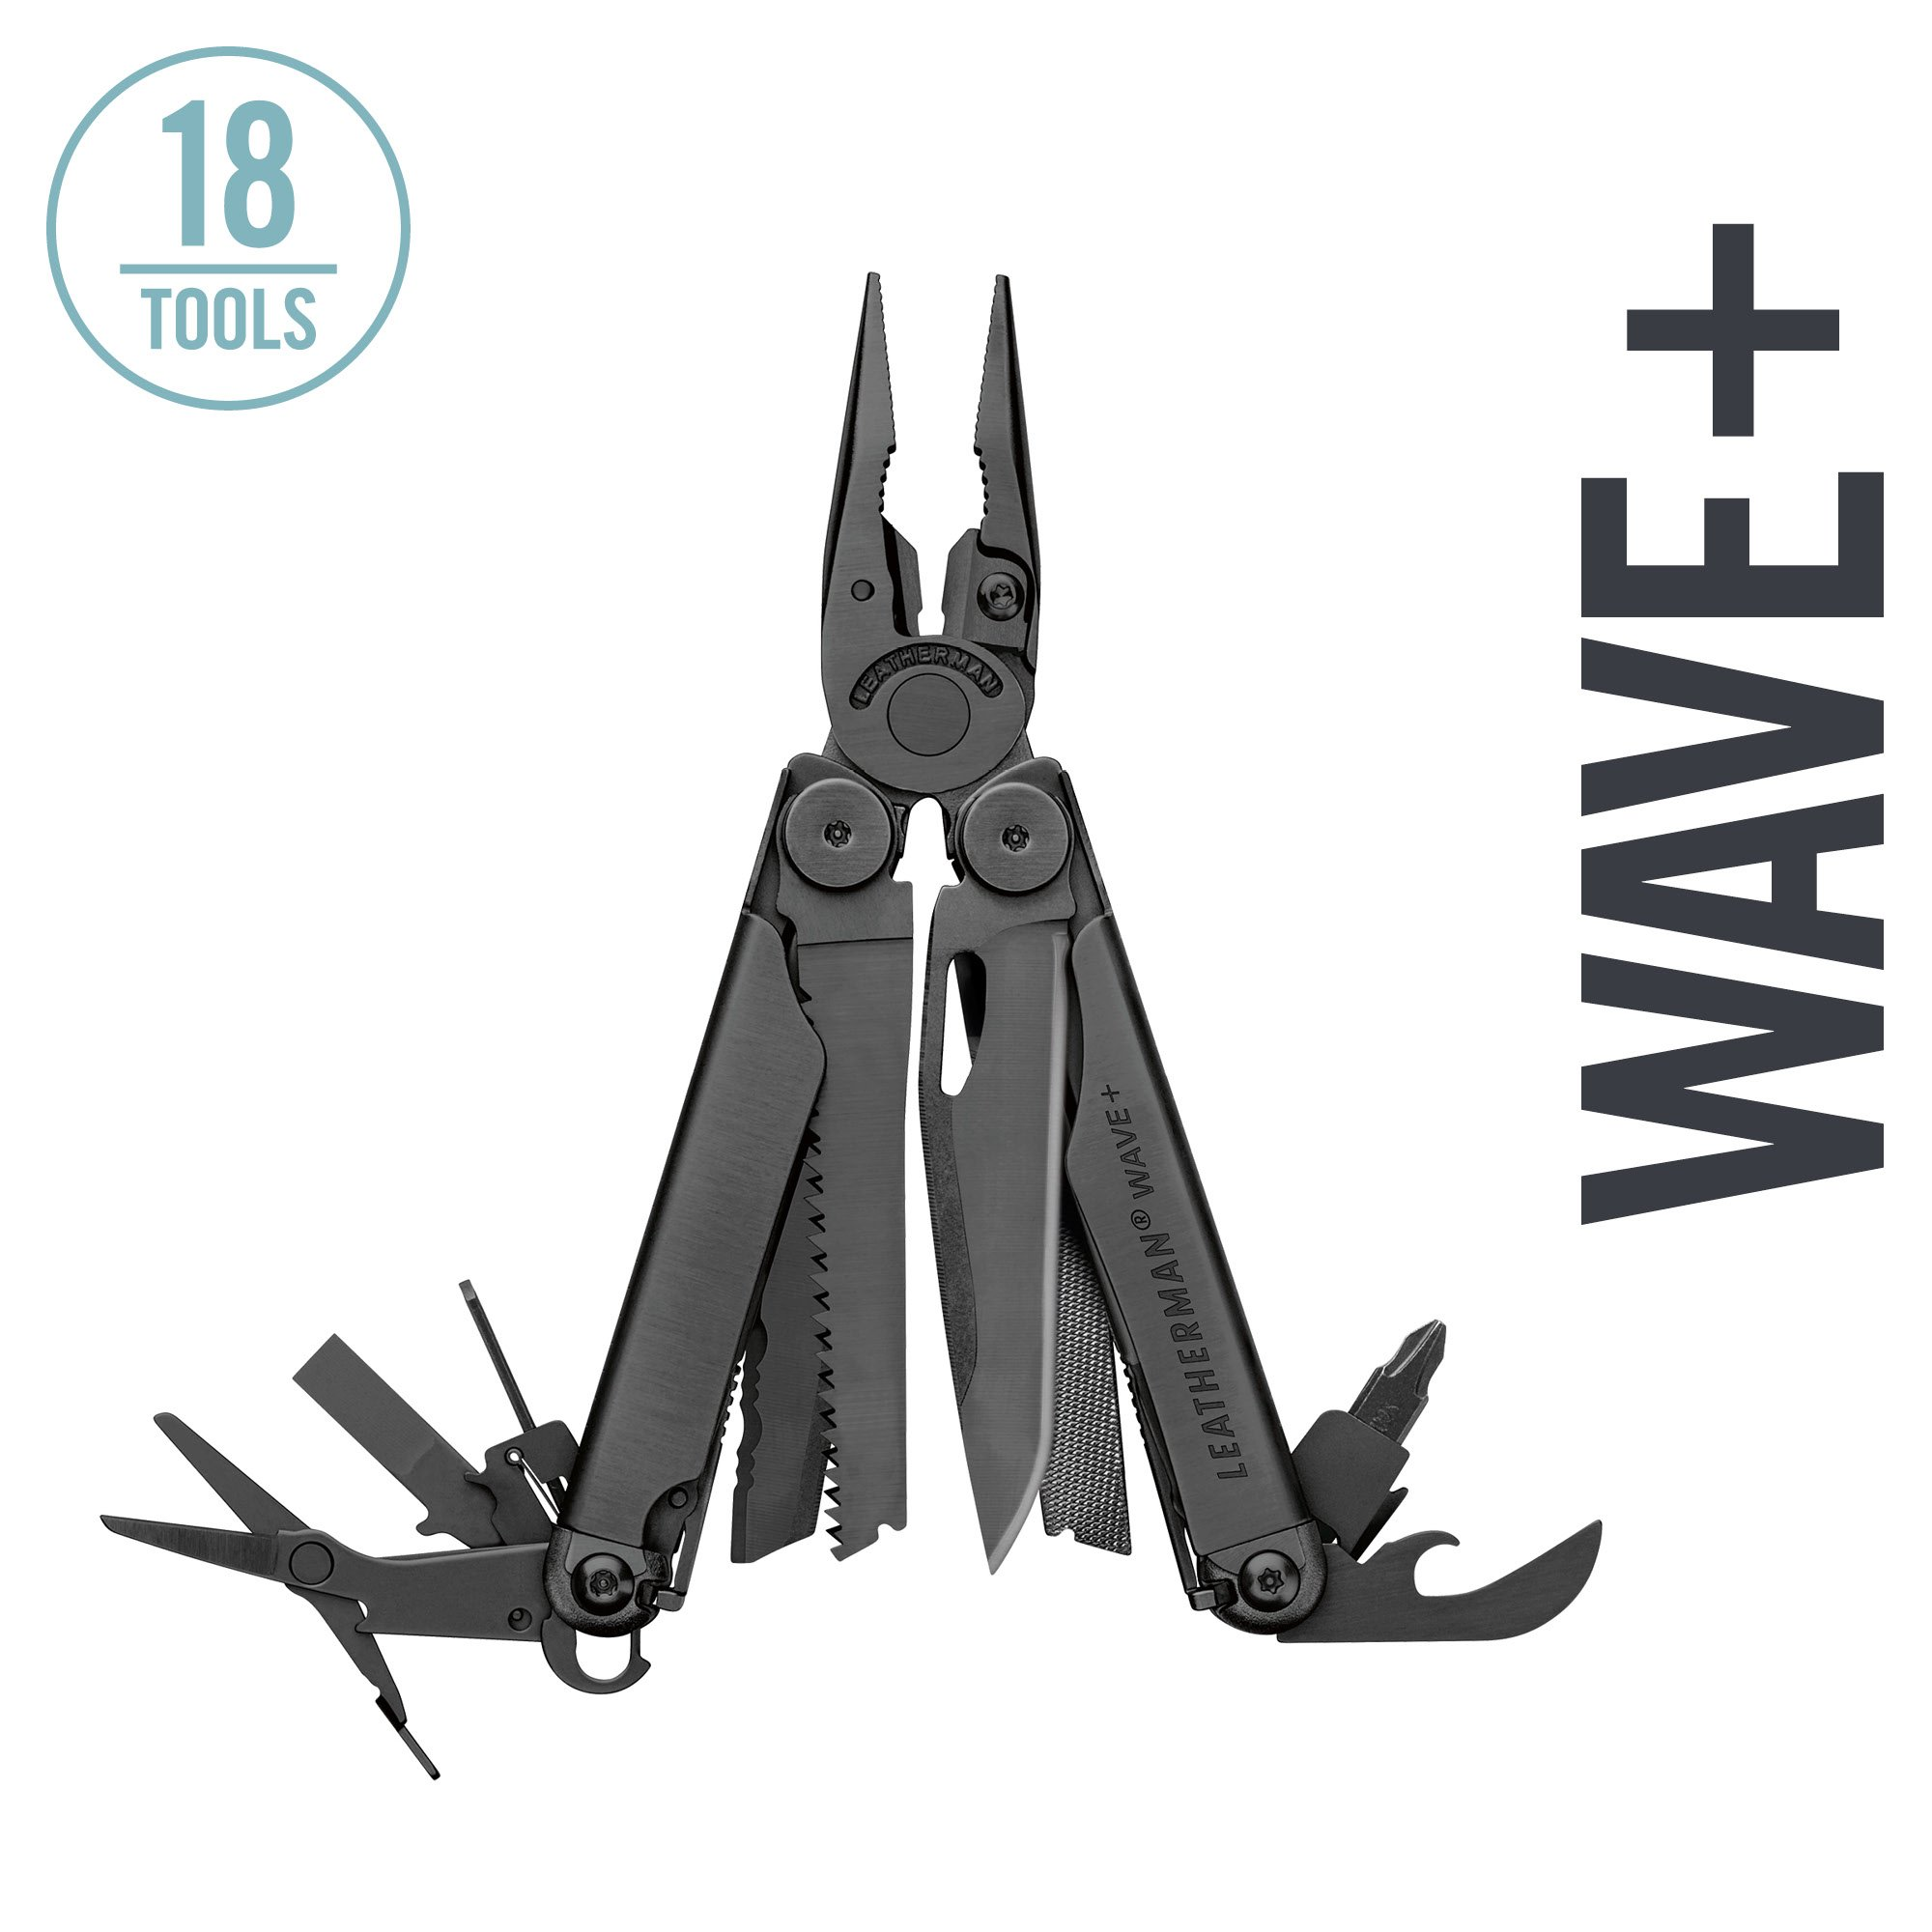 LEATHERMAN - Wave Plus Multitool with Premium Replaceable Wire Cutters and Spring-Action Scissors, Black